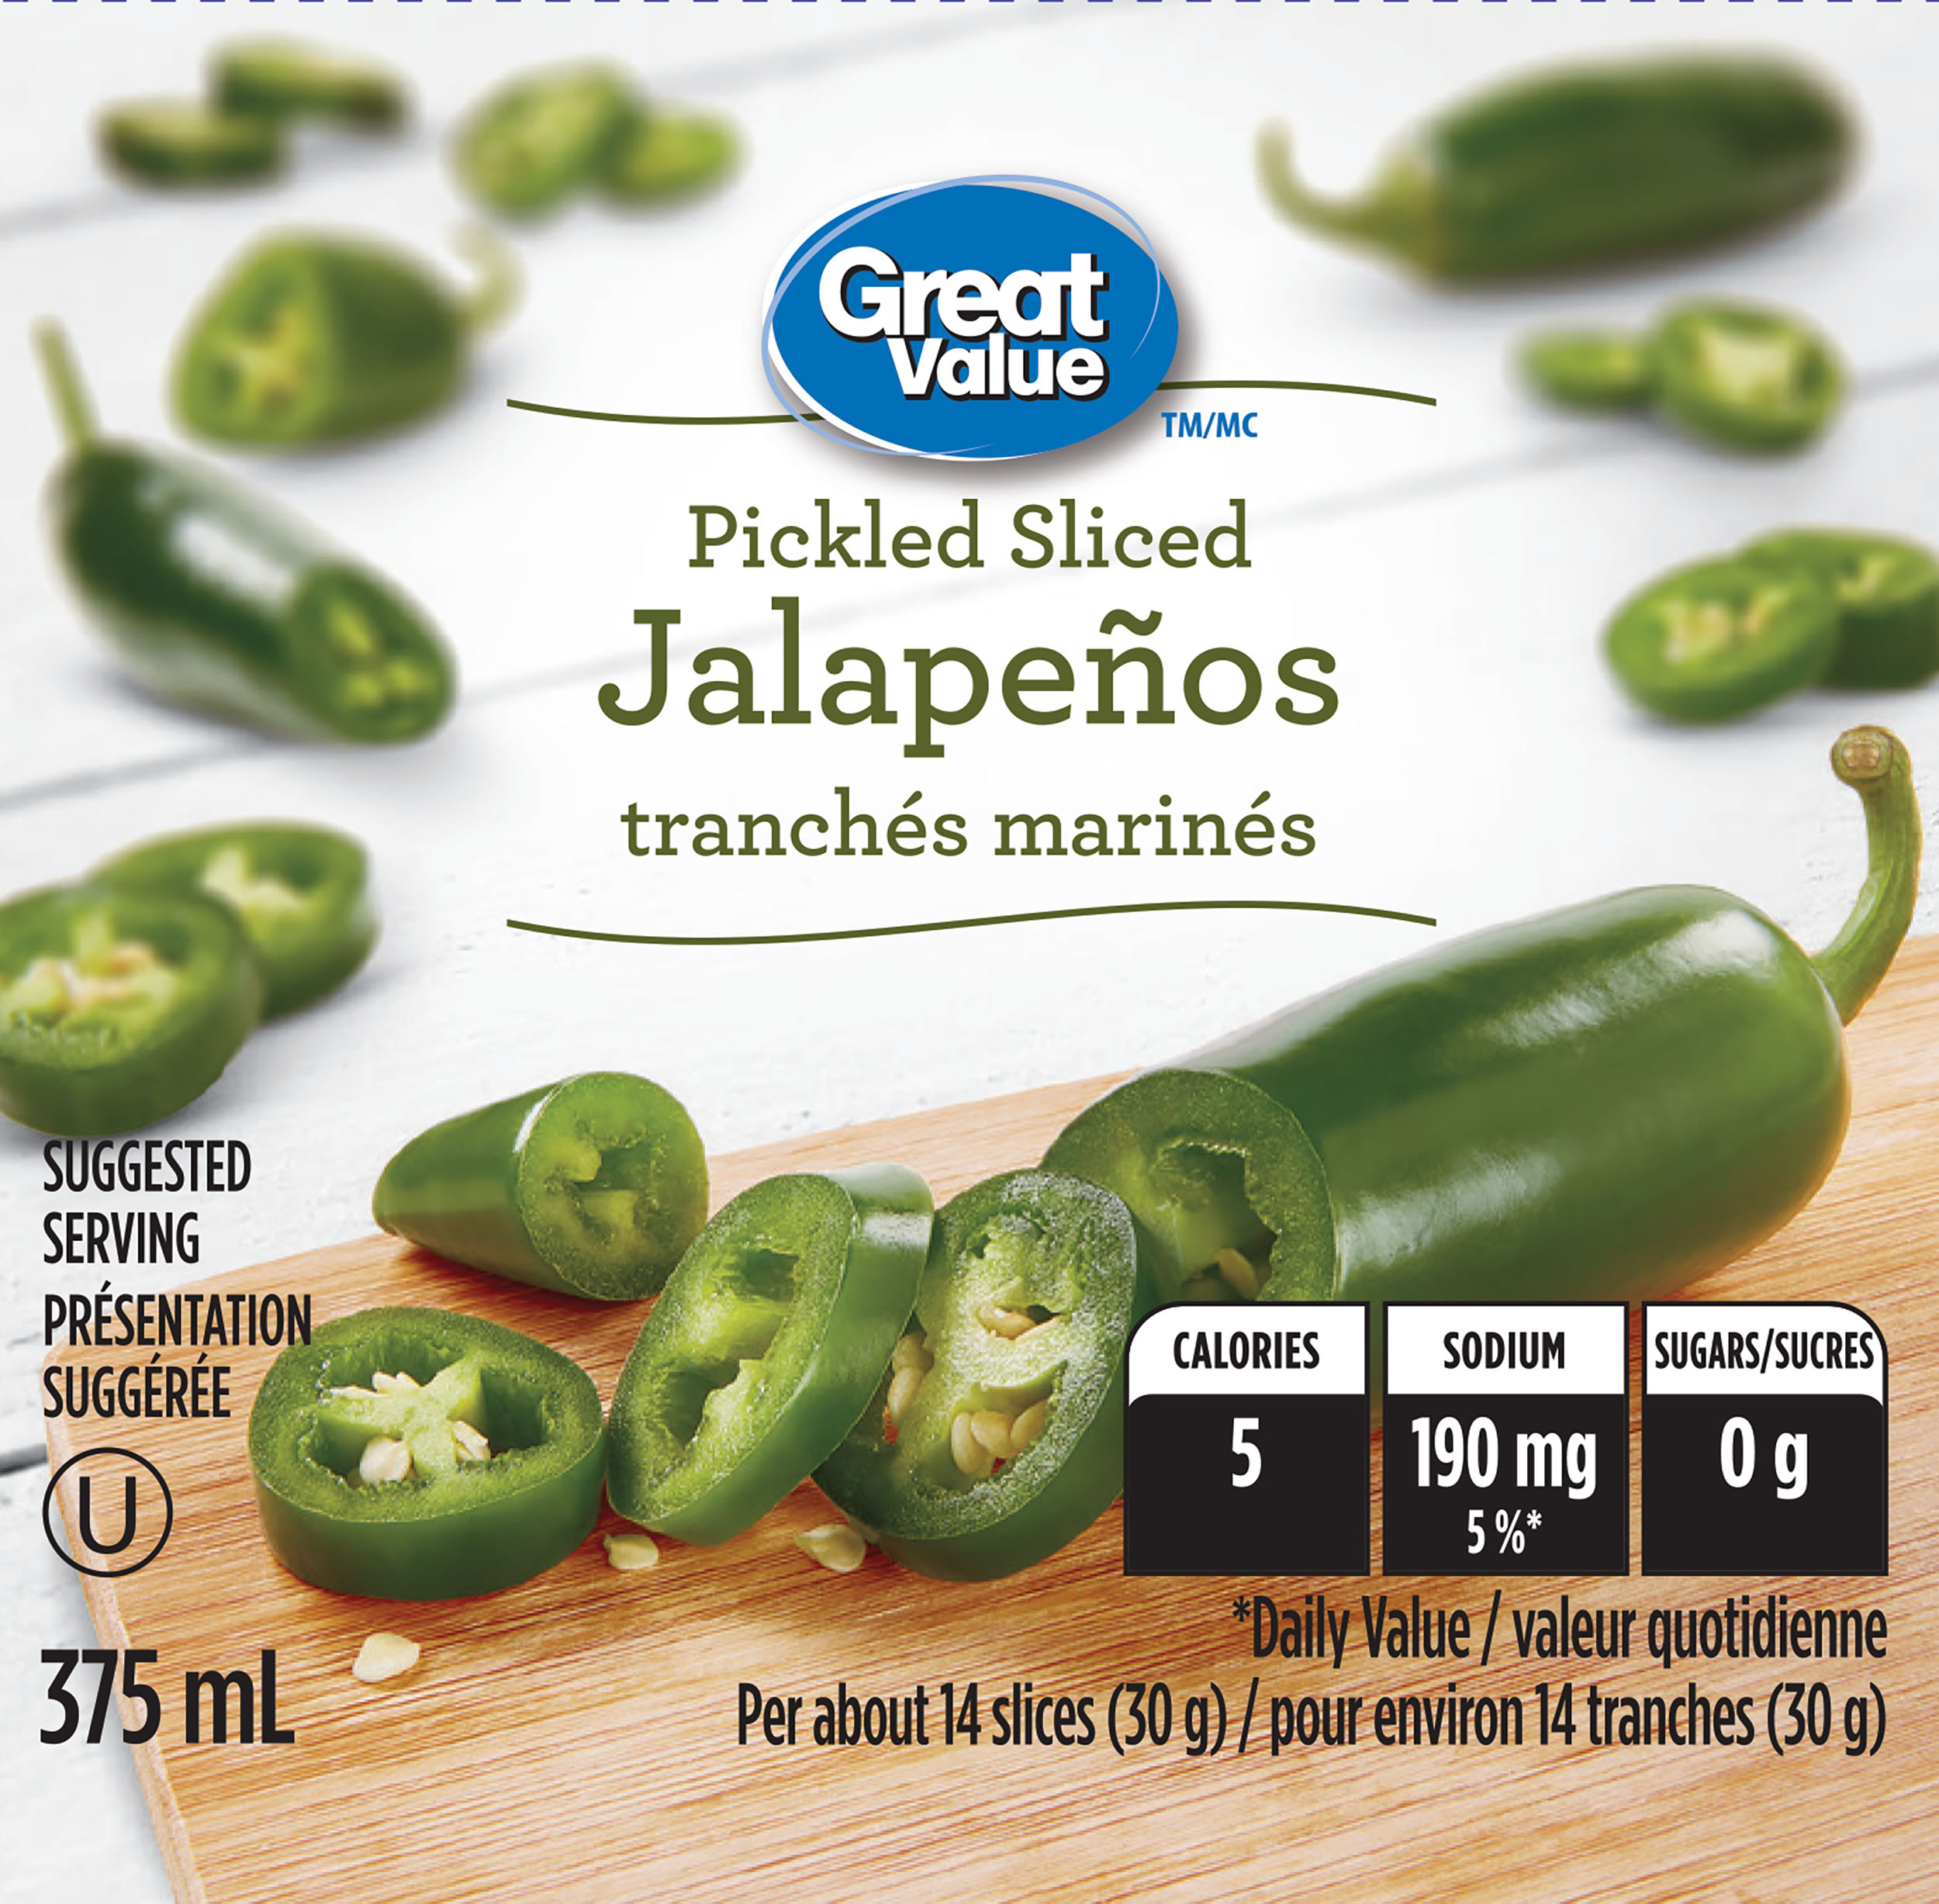 JalapenoSlices375mL_caGG_lbl_Final_LR